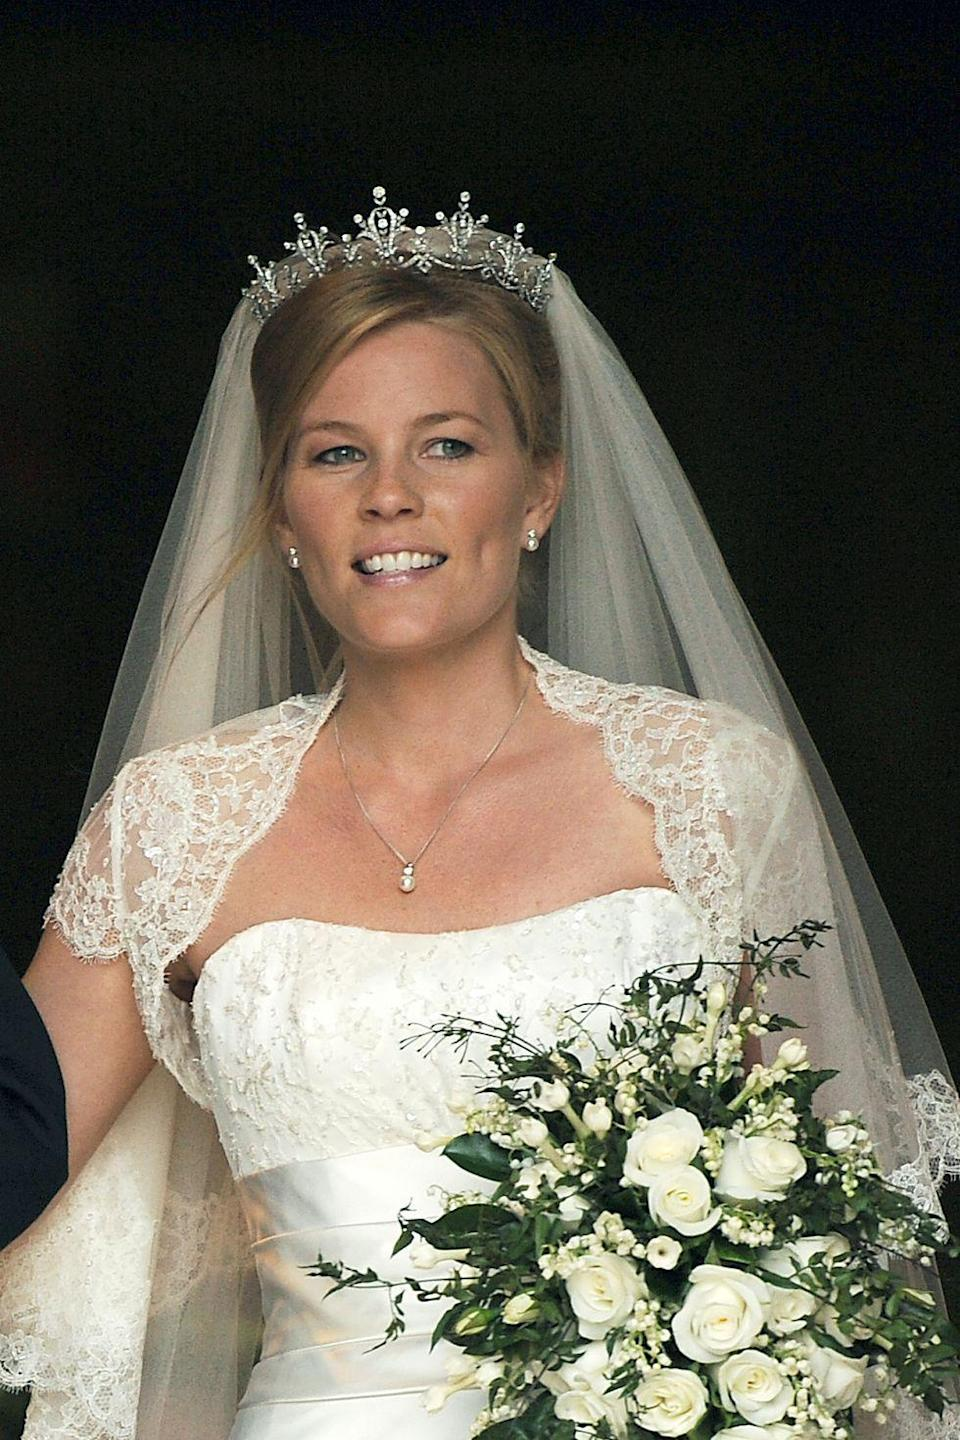 "<p><strong>Wedding date: </strong>May 17, 2008</p><p><strong>Wedding tiara: </strong>Autumn married Peter Phillips, <a href=""https://www.townandcountrymag.com/society/tradition/a13075050/princess-anne-queen-elizabeth-daughter-facts/"" rel=""nofollow noopener"" target=""_blank"" data-ylk=""slk:Princess Anne's son"" class=""link rapid-noclick-resp"">Princess Anne's son</a>, wearing the Festoon tiara, which was <a href=""http://orderofsplendor.blogspot.com/2011/07/tiara-thursday-festoon-tiara.html"" rel=""nofollow noopener"" target=""_blank"" data-ylk=""slk:given to Anne in 1973"" class=""link rapid-noclick-resp"">given to Anne in 1973</a> by the World Wide Shipping Group. Anne wears the delicate diamond tiara often, and lent it to her new daughter-in-law on her wedding day.</p>"